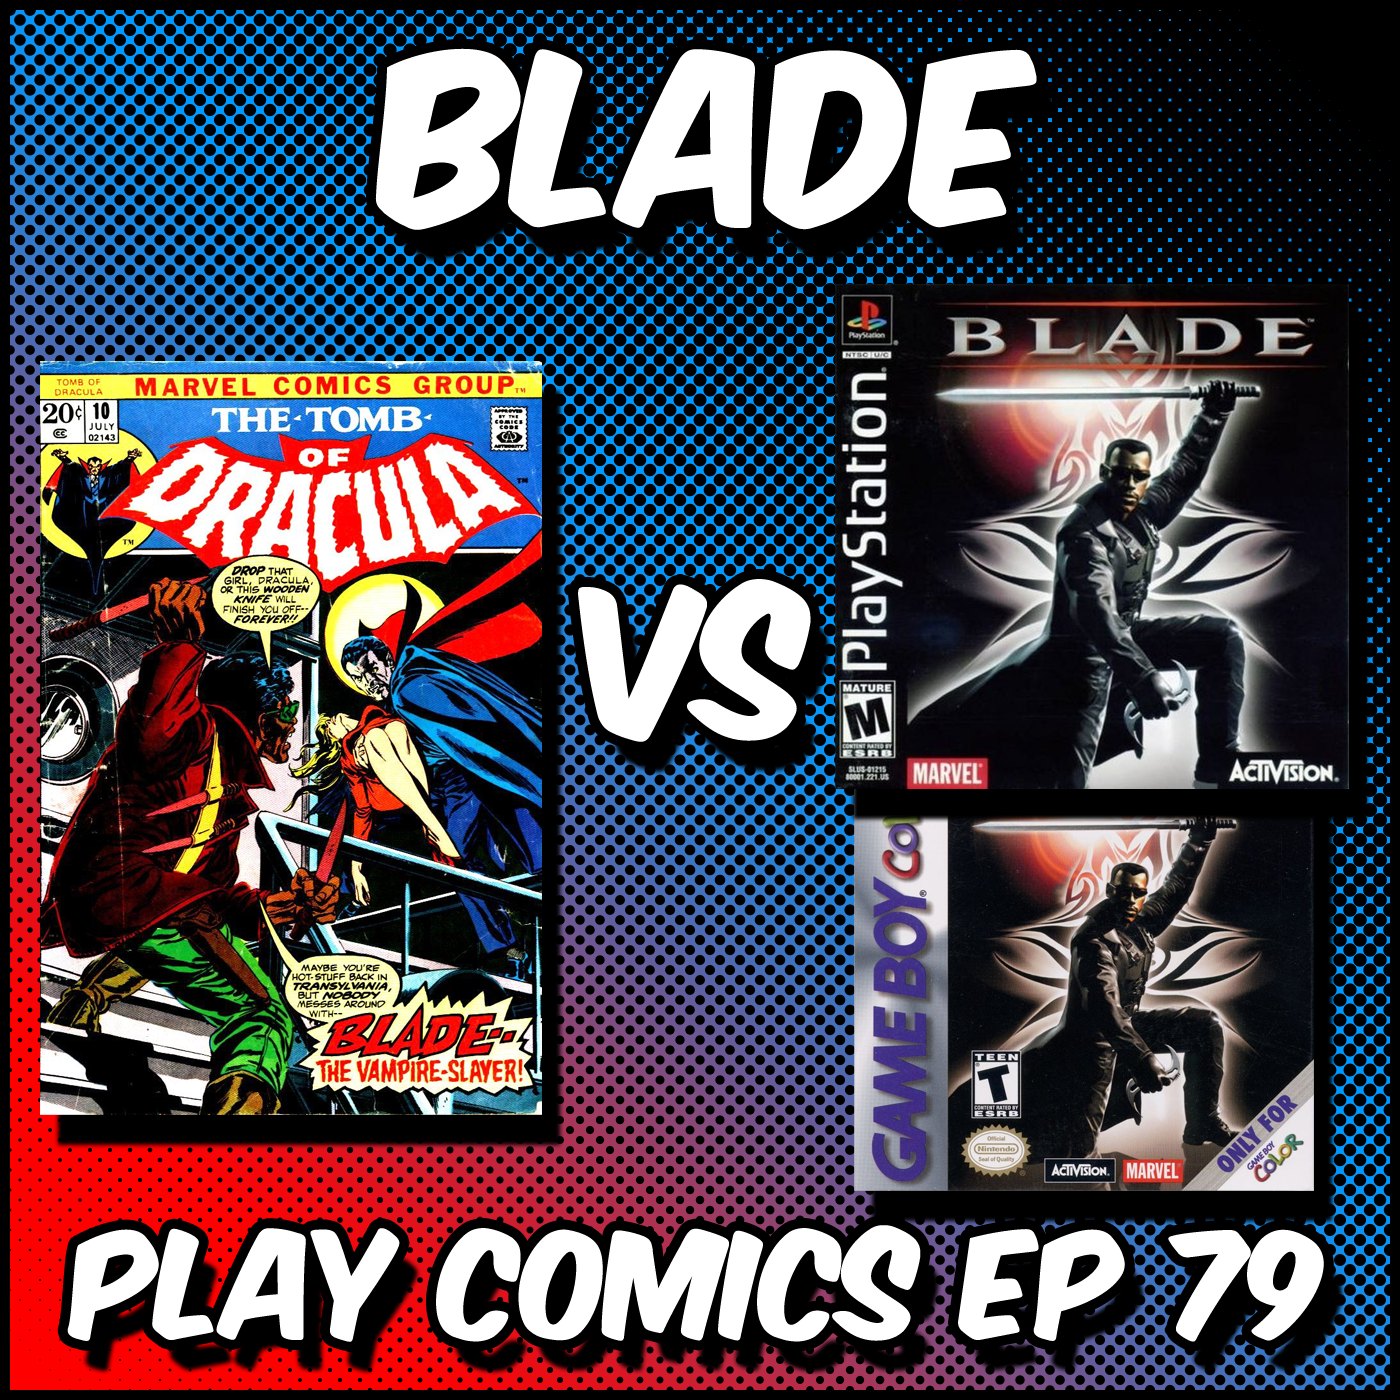 Blade with TJ Johnson (Voice from the Underground)